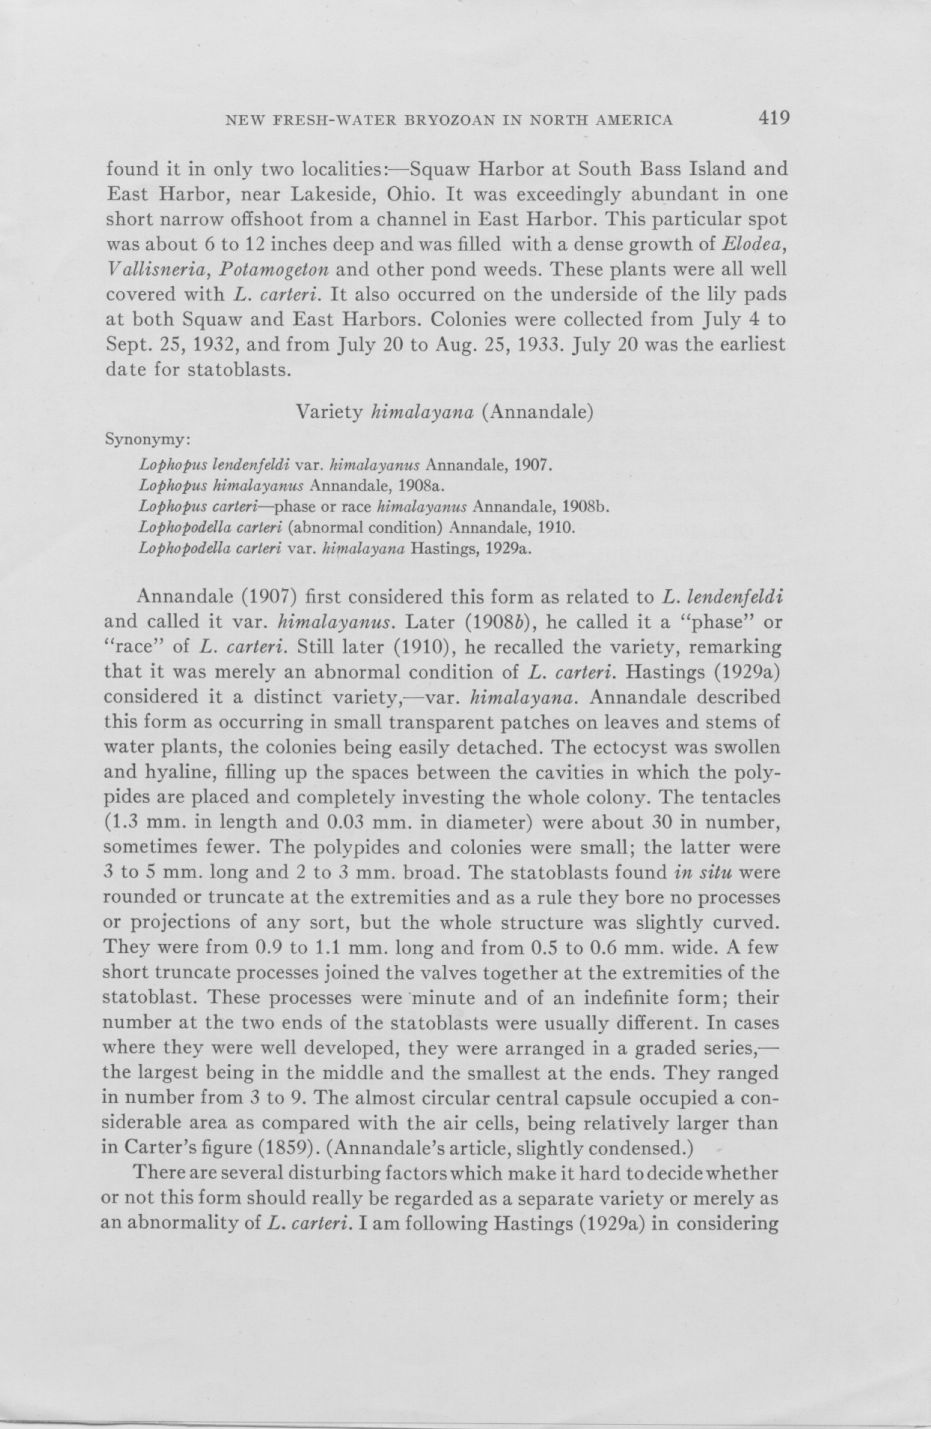 The occurrence of Lophopodella carteri page 5